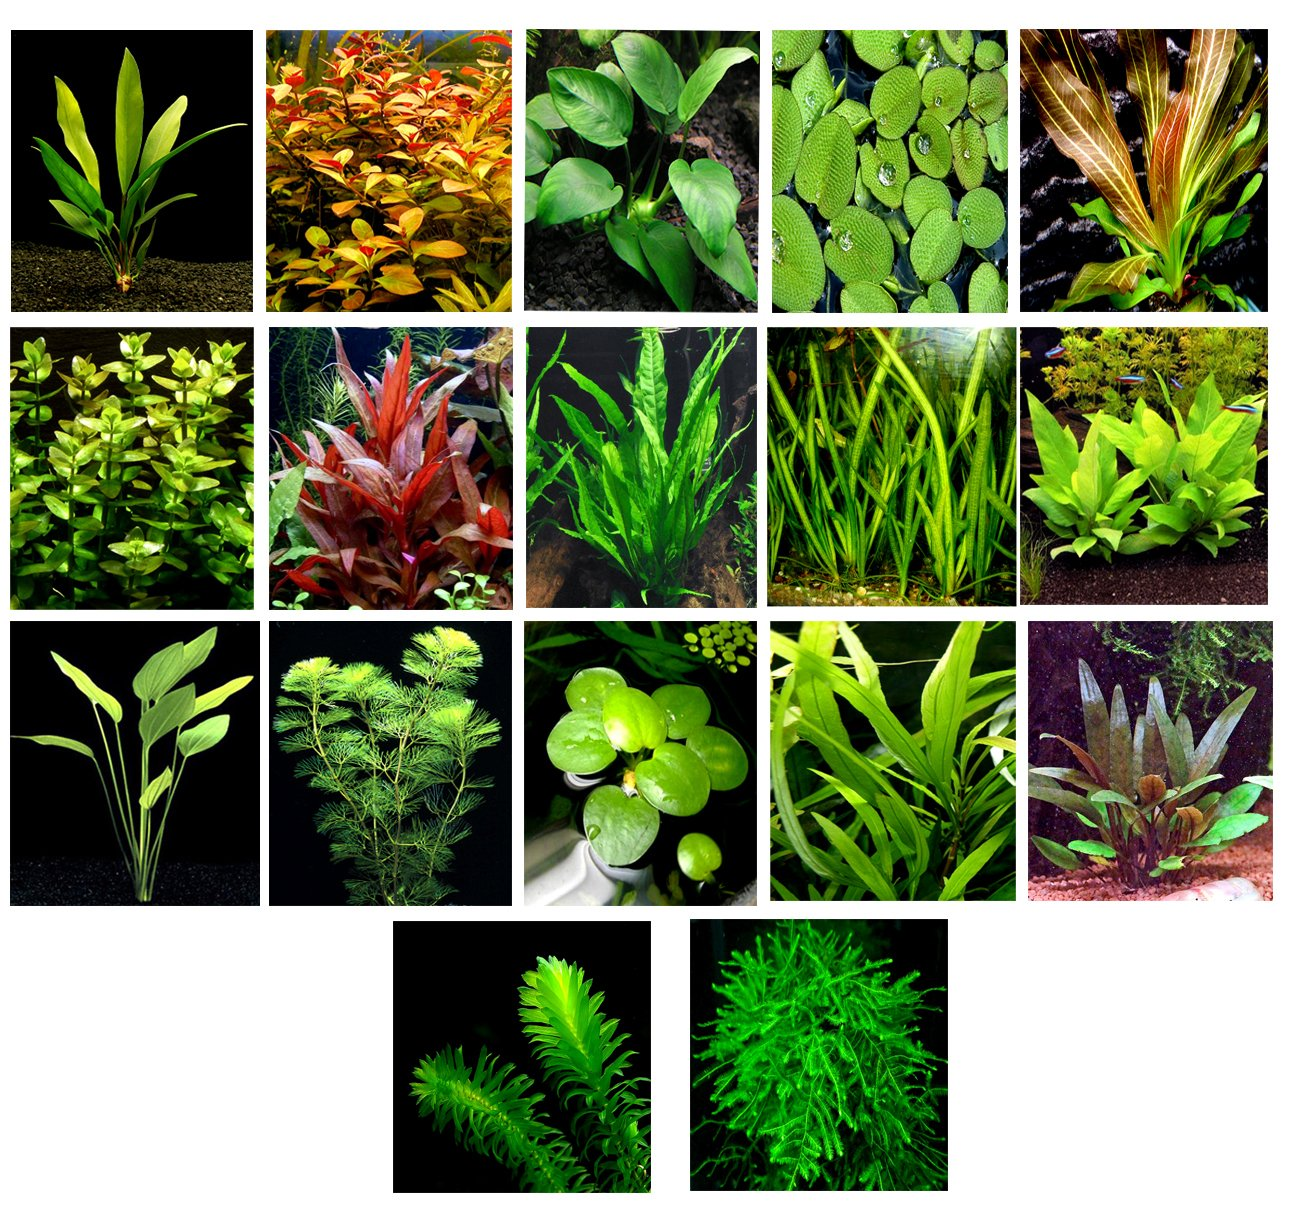 50 Live Aquarium Plants   17 Different Kinds Amazon Swords, Anubias, Java Fern, Java Moss, Ludwigia and more  Great plant sampler for 40-45 gal. tanks.